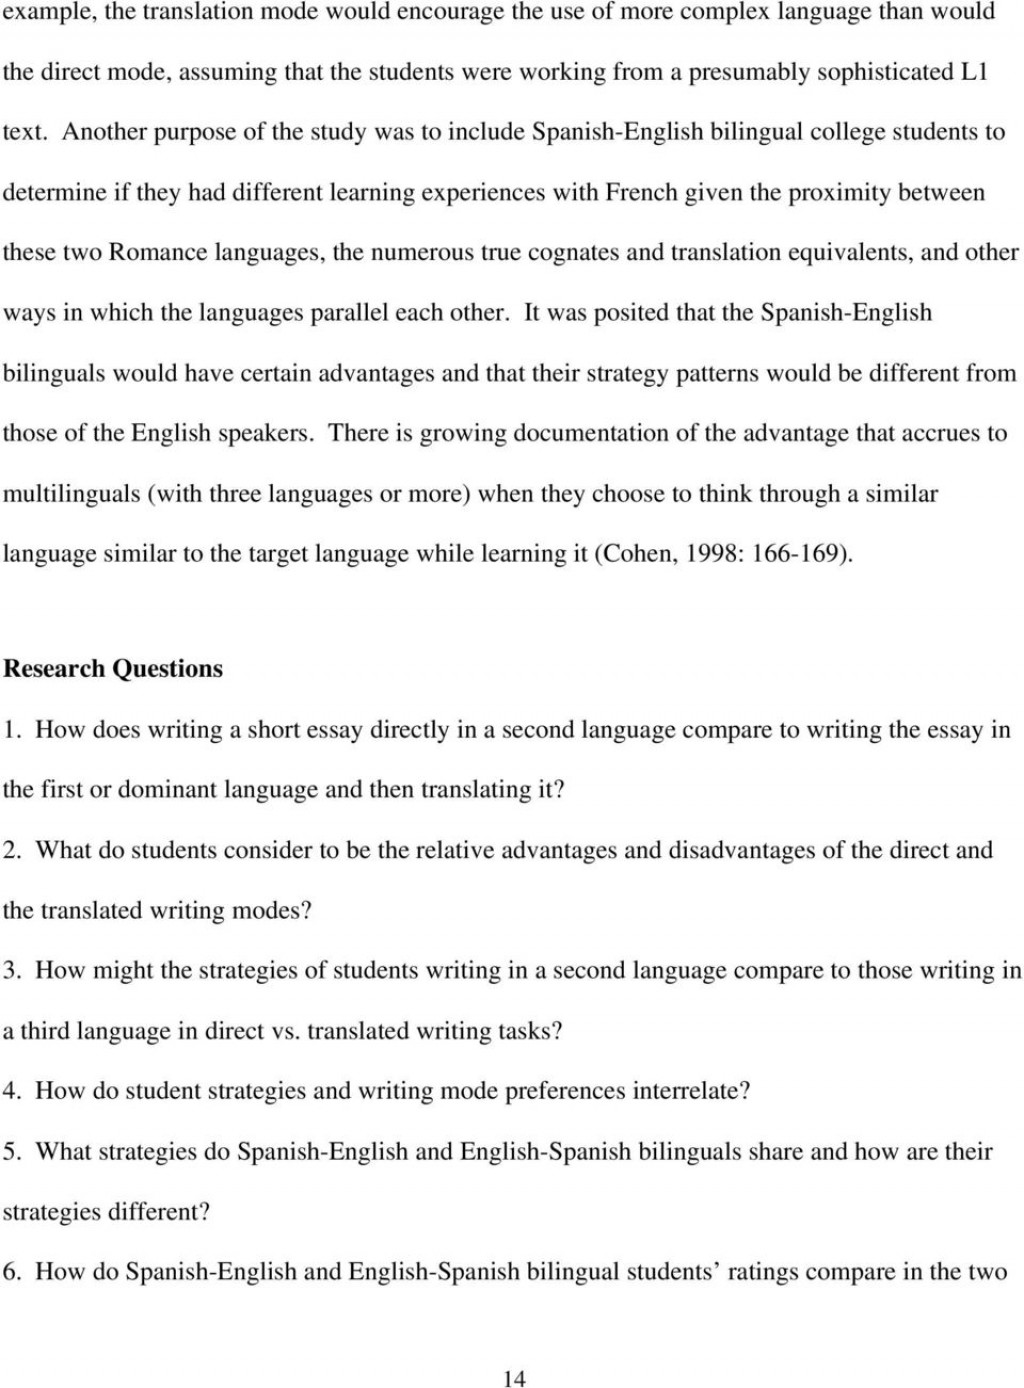 017 Essay Example What Is In Spanish Direct Vs Translated Writing Students Do And Write My Paper Pa For Imposing English From Called Large